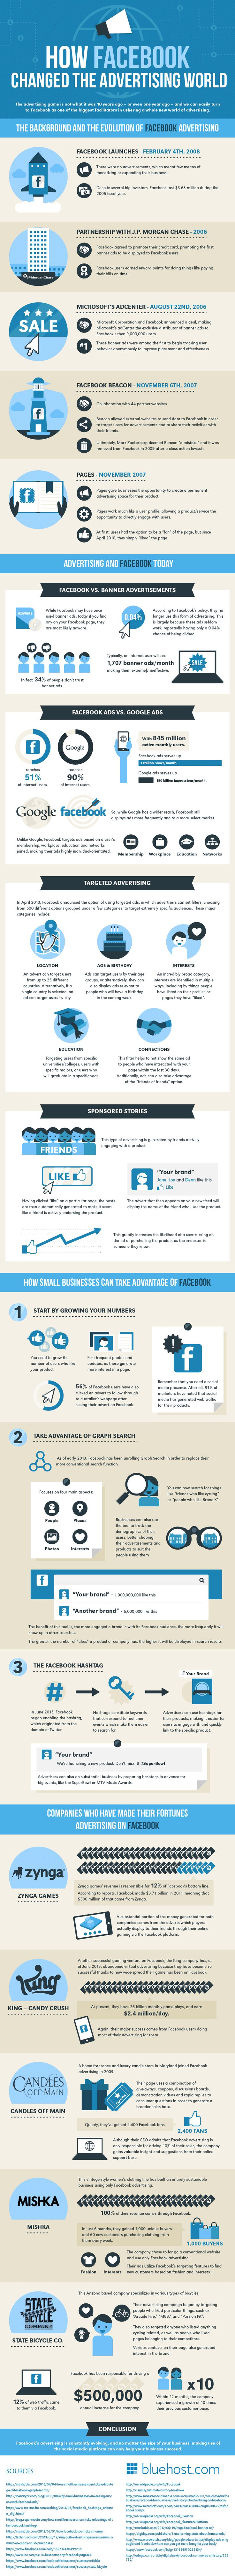 Facebook Advertising Trends: How Facebook Changed Advertising Forever - Tap the link to shop on our official online store! You can also join our affiliate and/or rewards programs for FREE!